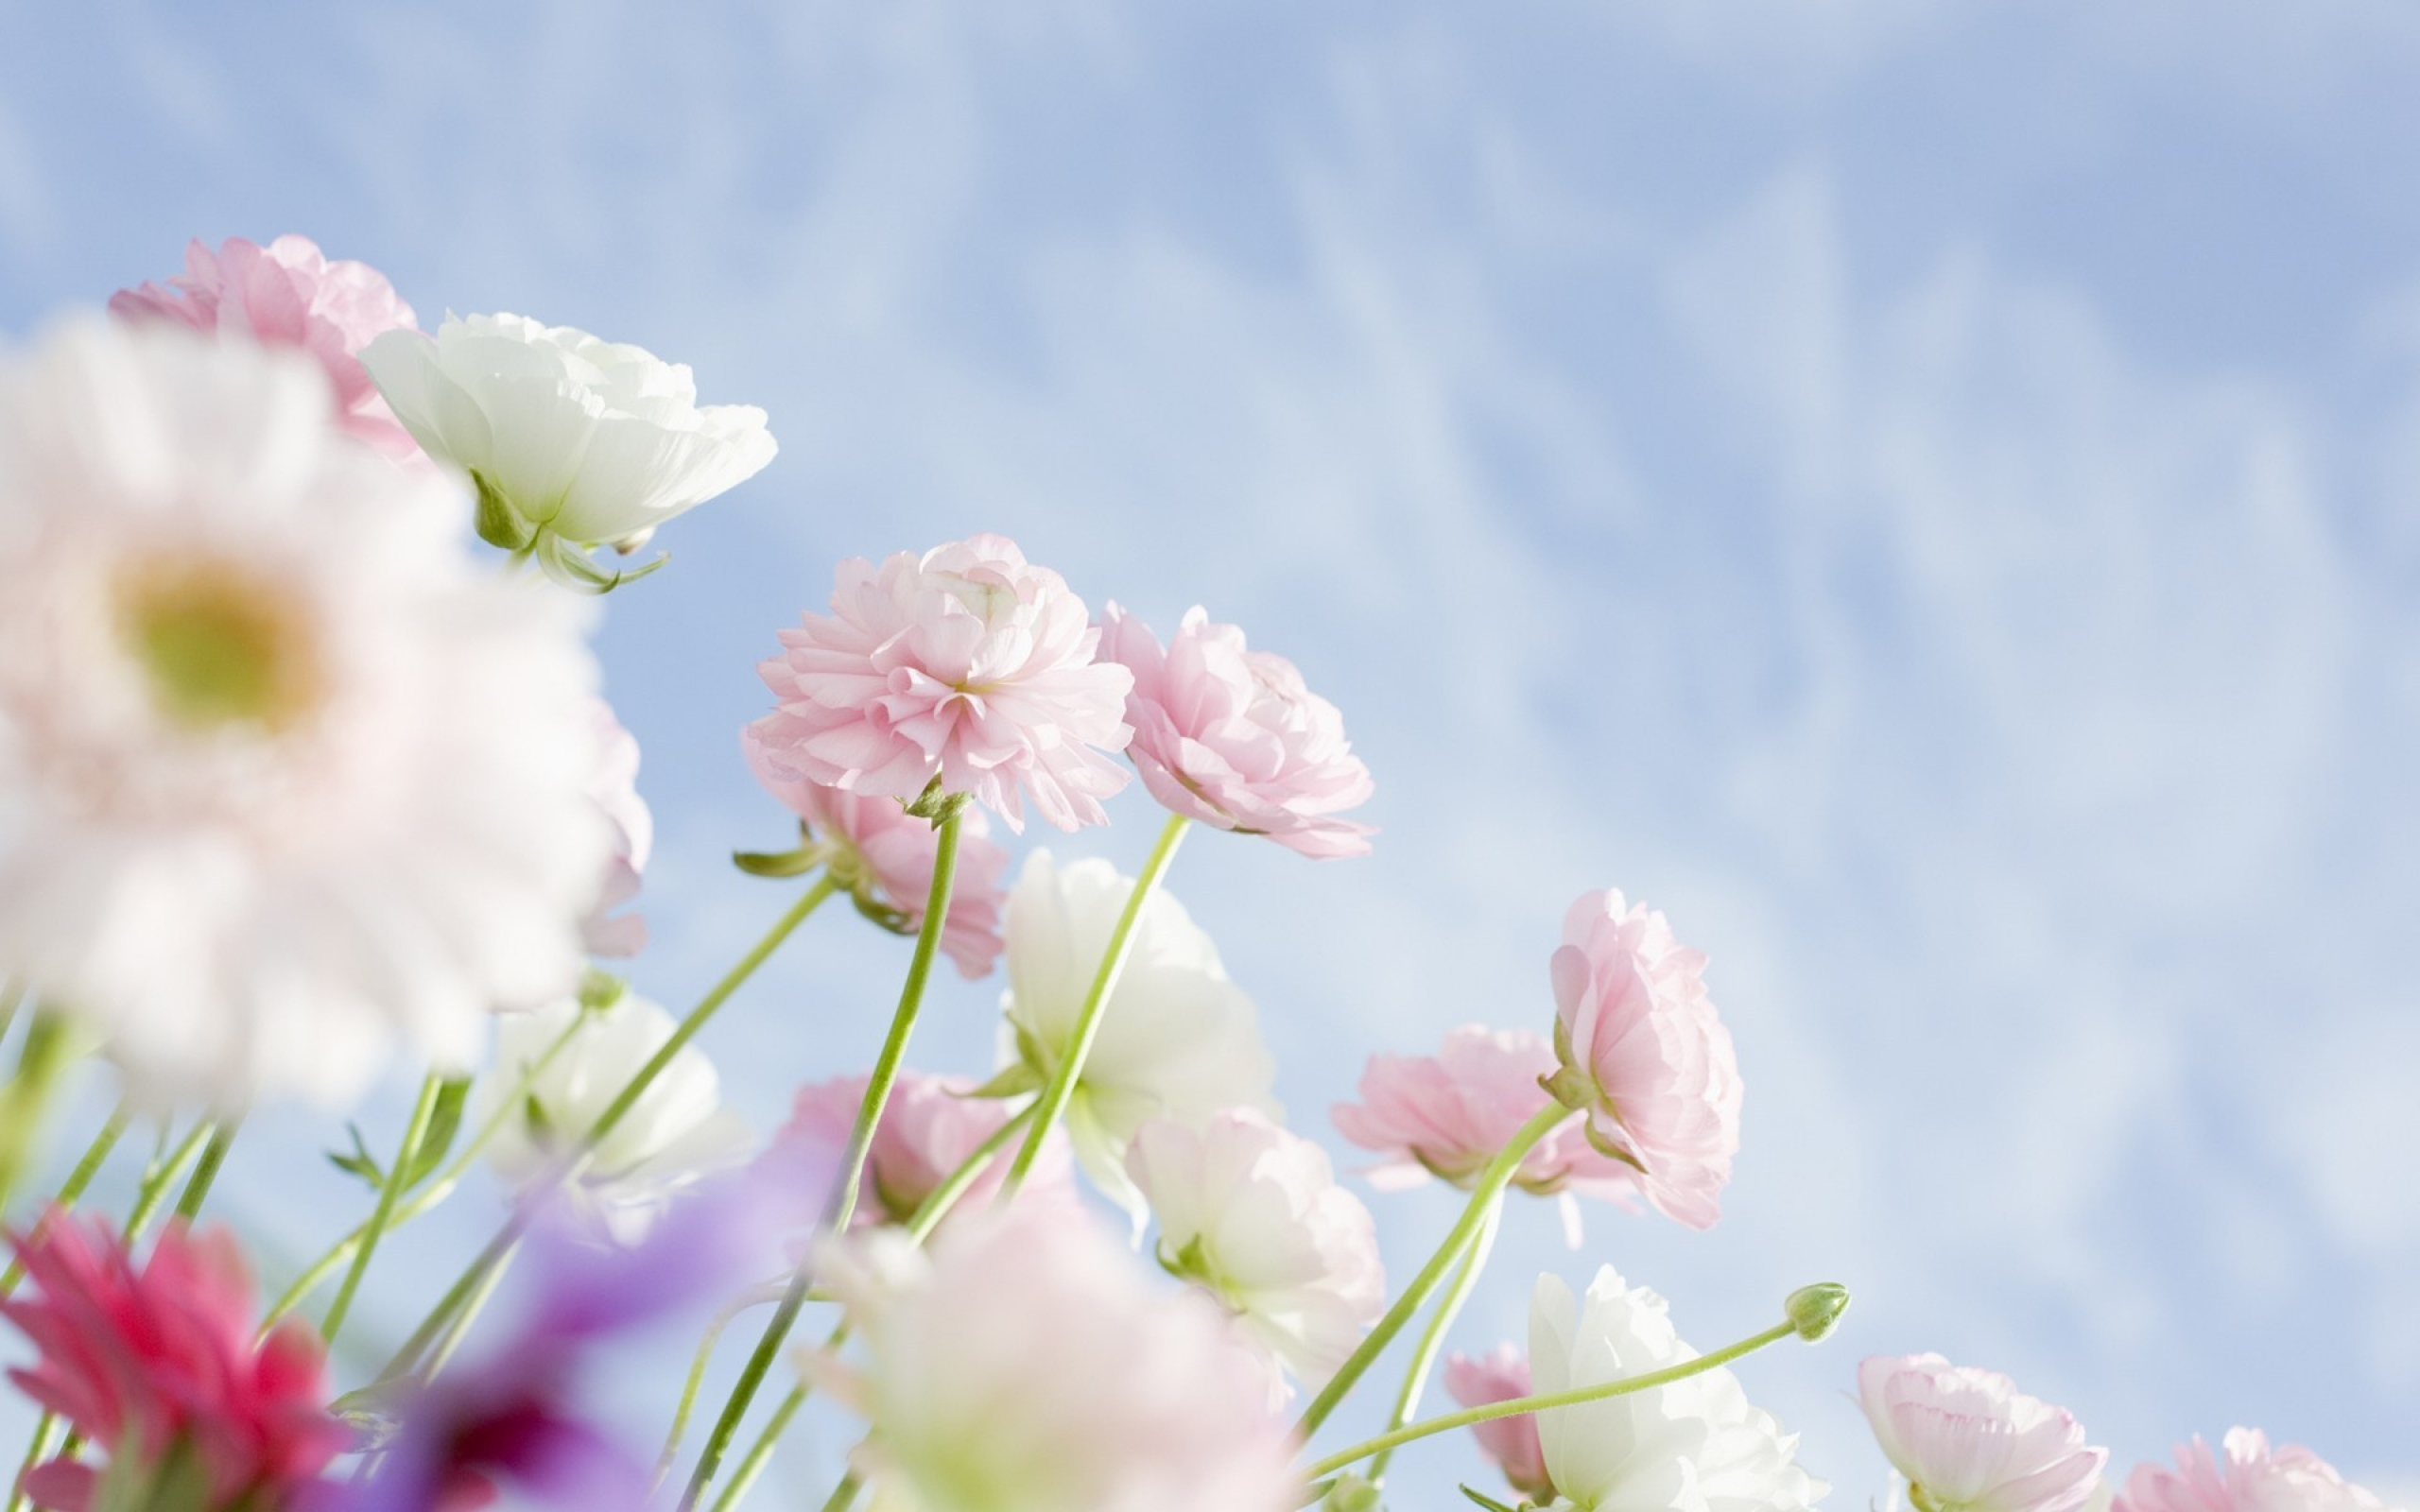 Spring White Flower Wallpaper High Definition High Quality